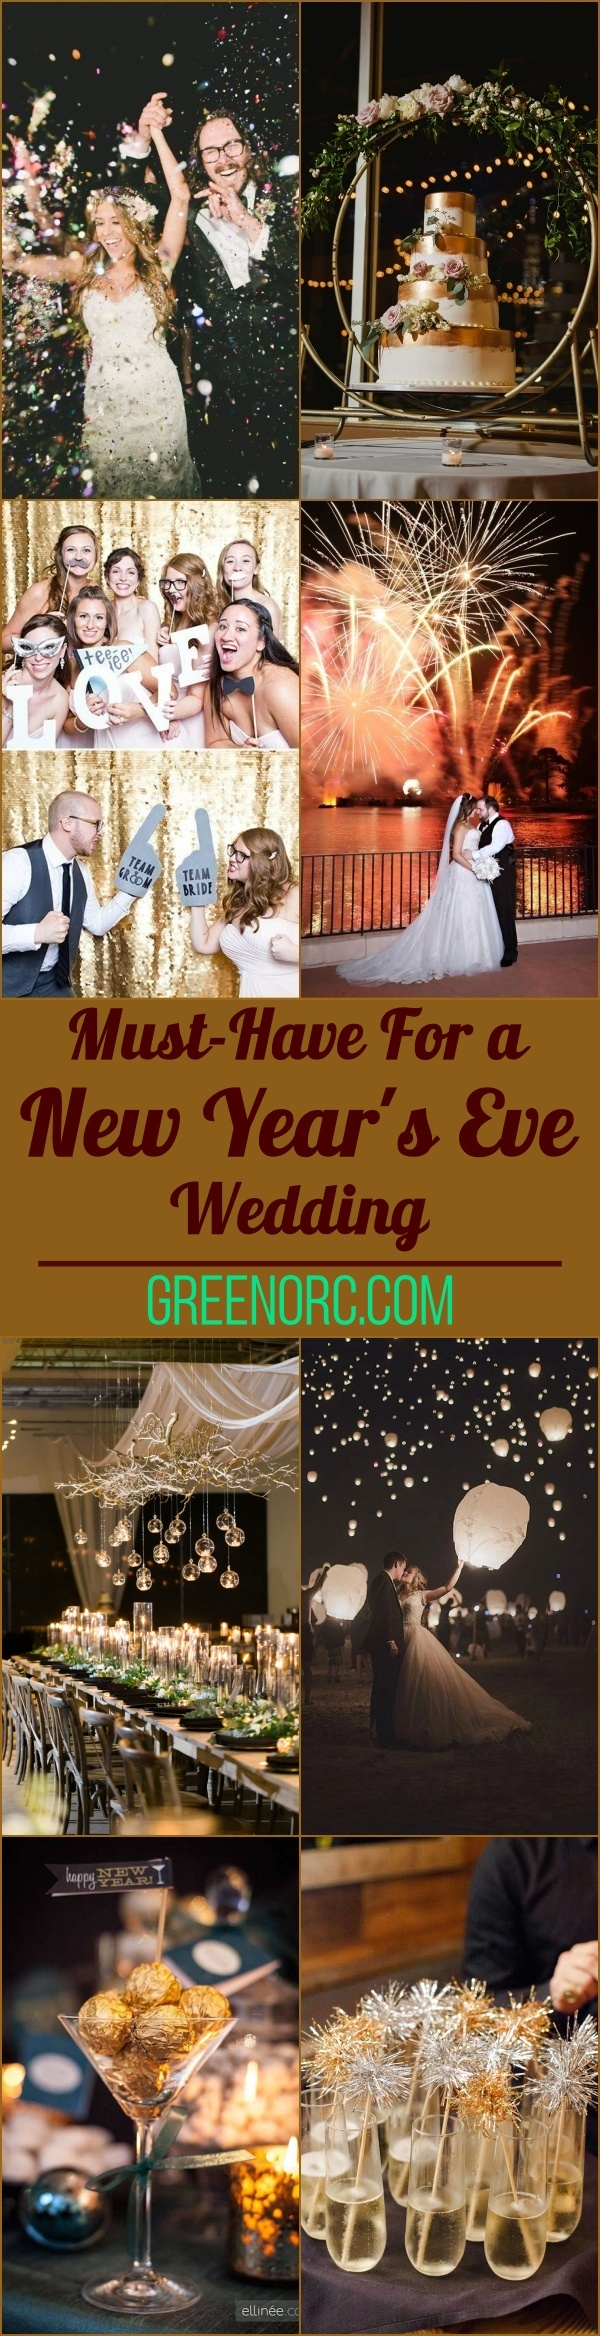 Must-Have For a New Year's Eve Wedding